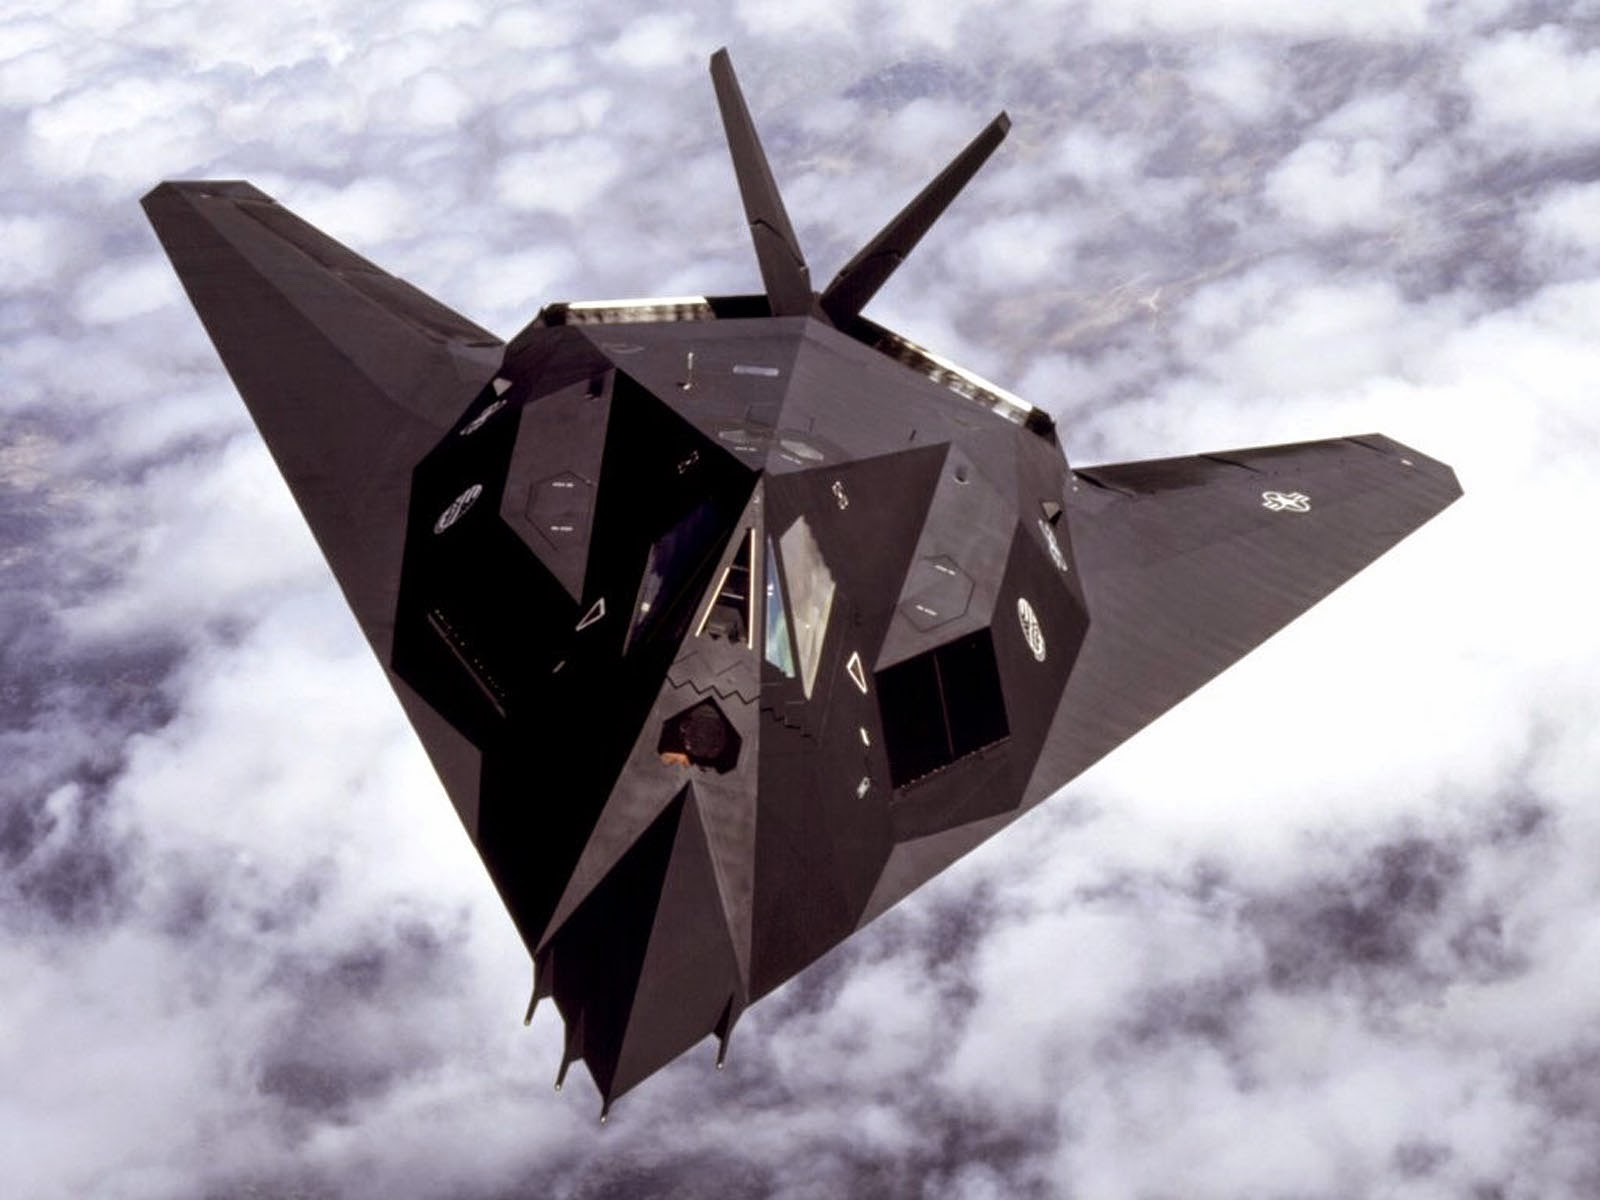 Wallpapers Lockheed F117 Nighthawk Aircraft Wallpapers. Best Paint Color For Living Room With Brown Furniture. Black Living Room Furniture Argos. Single Chairs Living Room. Yellow Black And Gray Living Room. Living Room Interior Decoration India. Red And White Living Room. Make Living Room Furniture Layout. Tall Side Tables Living Room